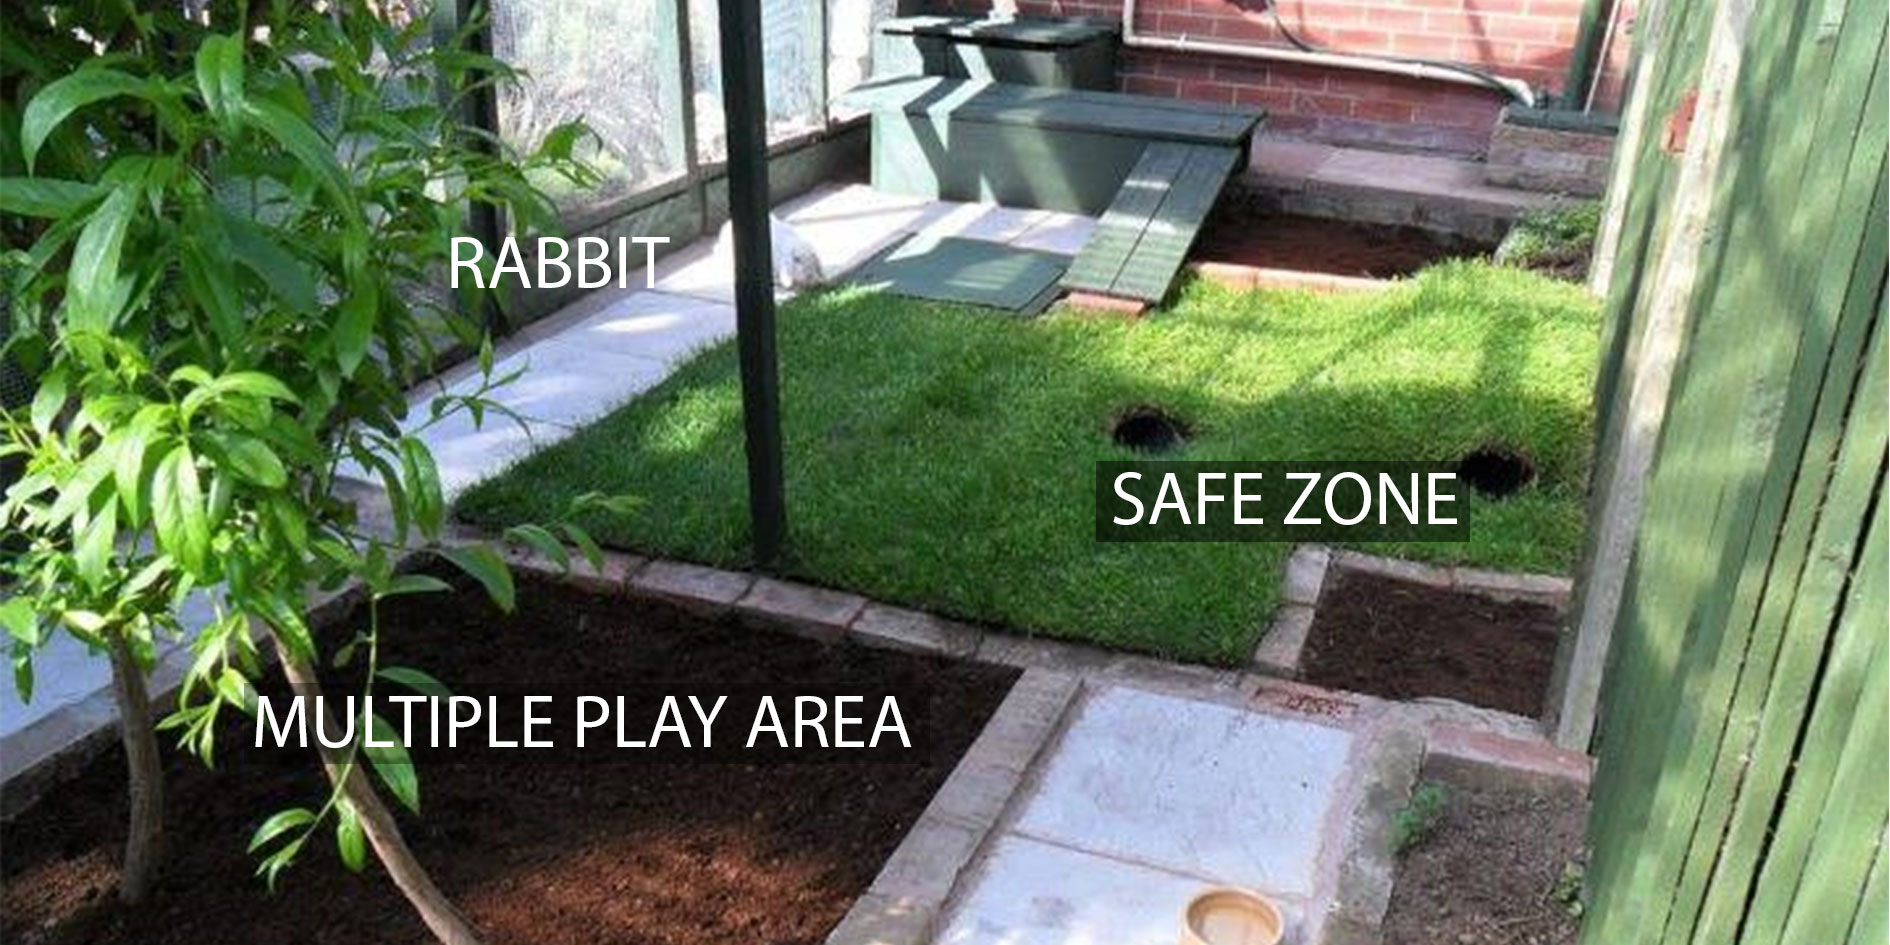 mspca-vegan-pet-rabbit-safe-area